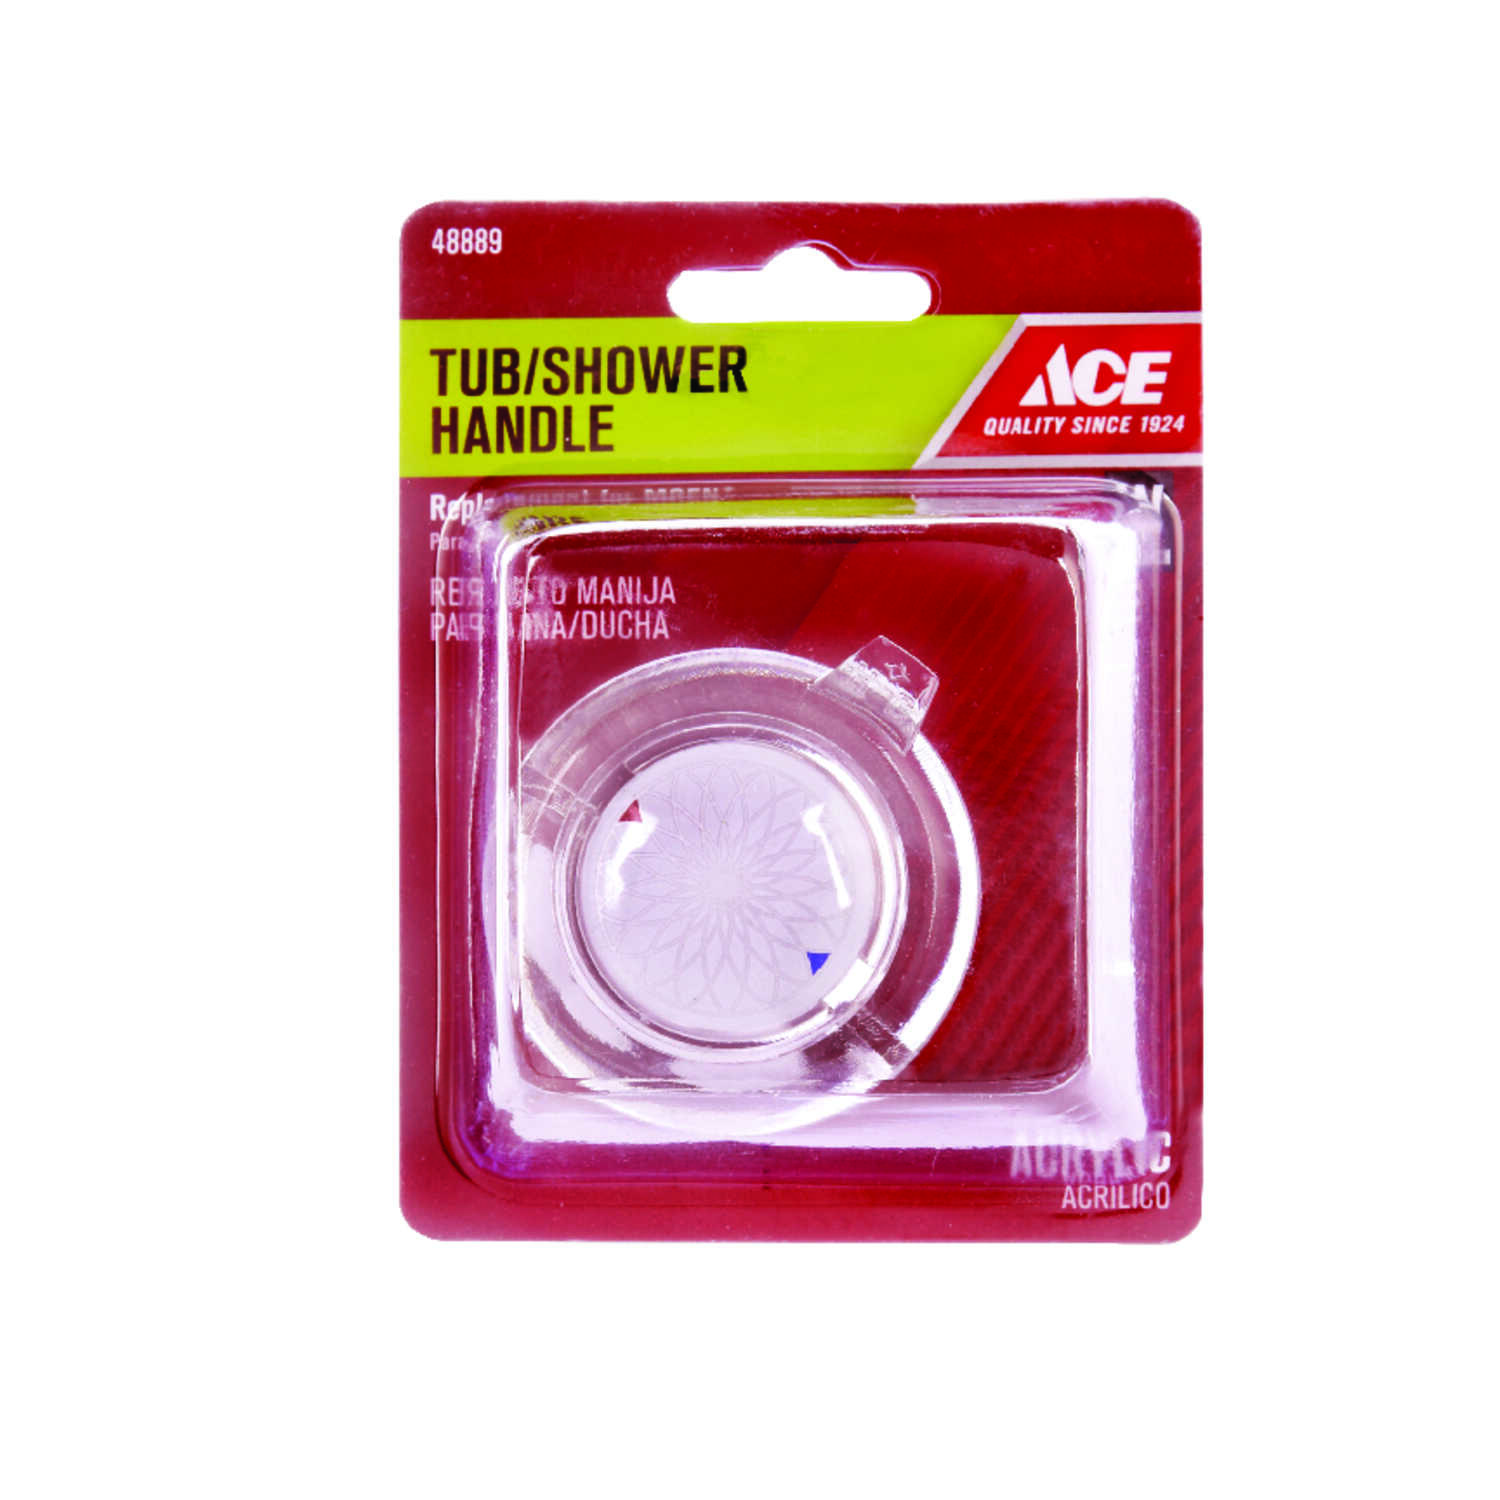 Ace  Knob  Acrylic  Clear  Single  Tub and Shower Handle